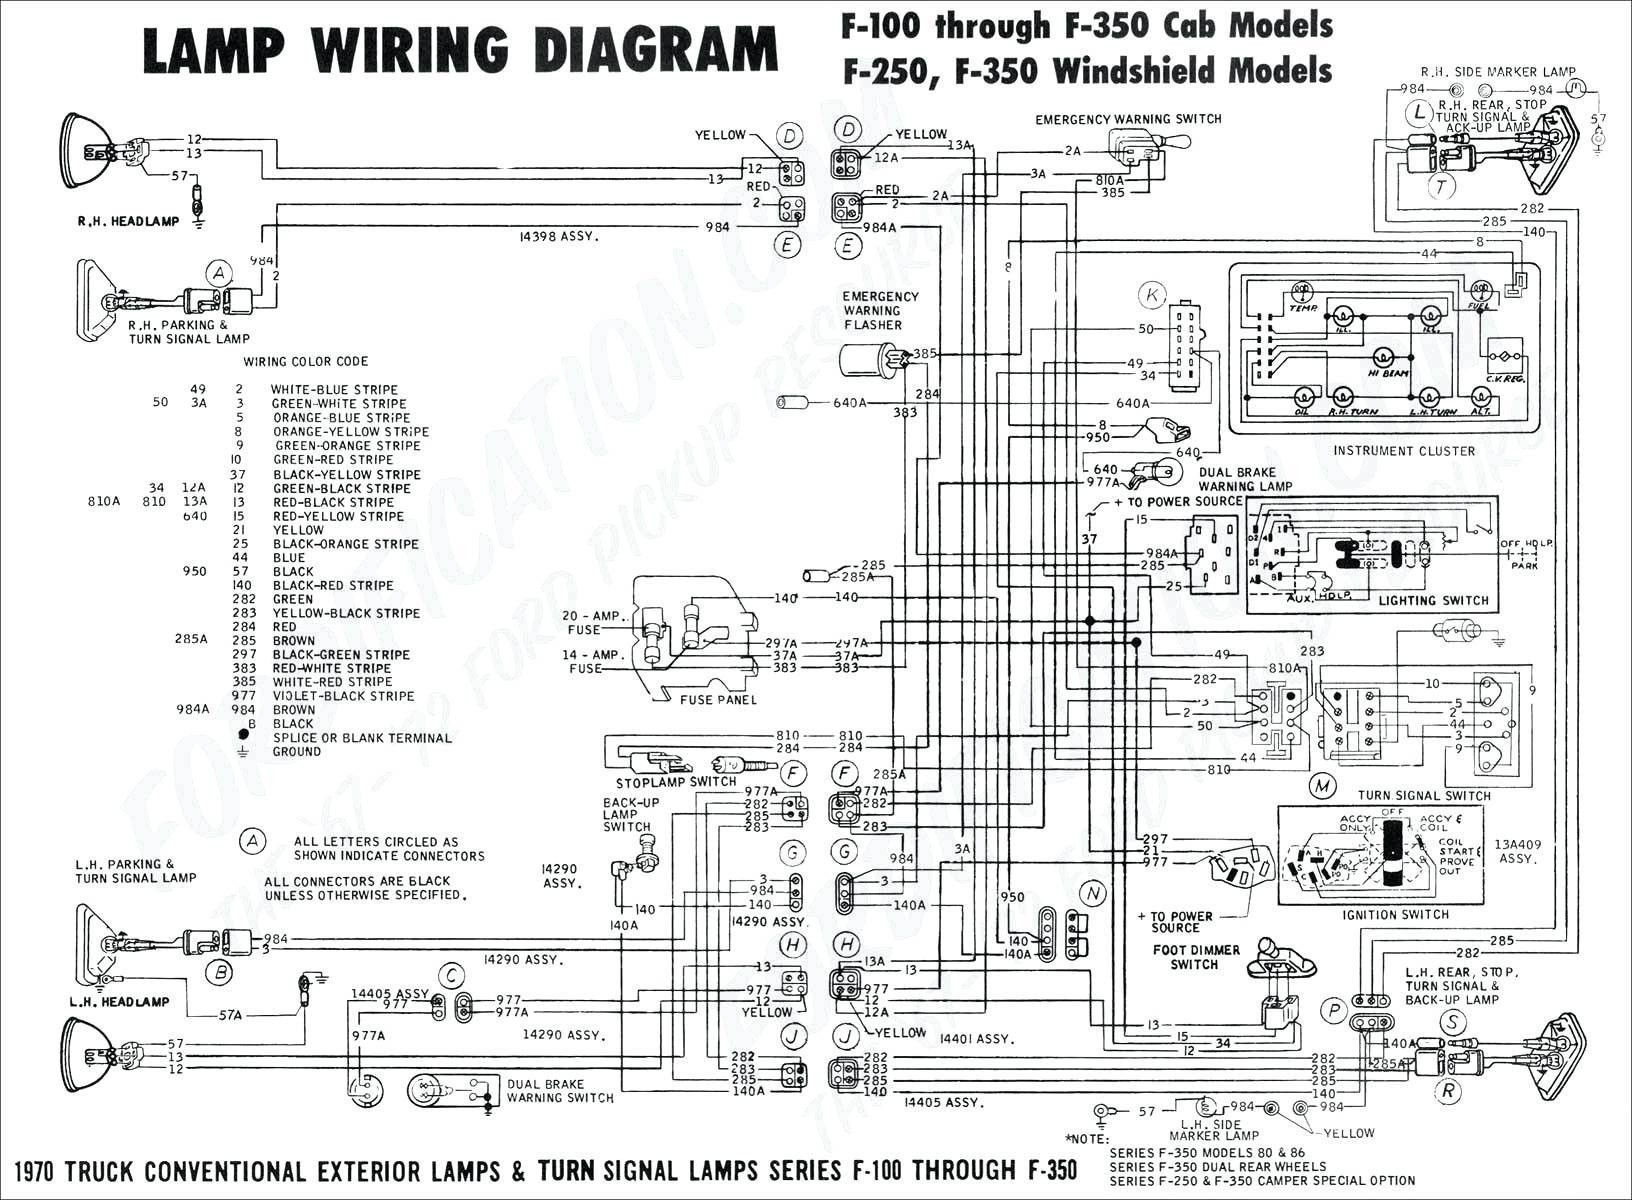 File Name: 2001 Bas Tracker Wiring Diagram